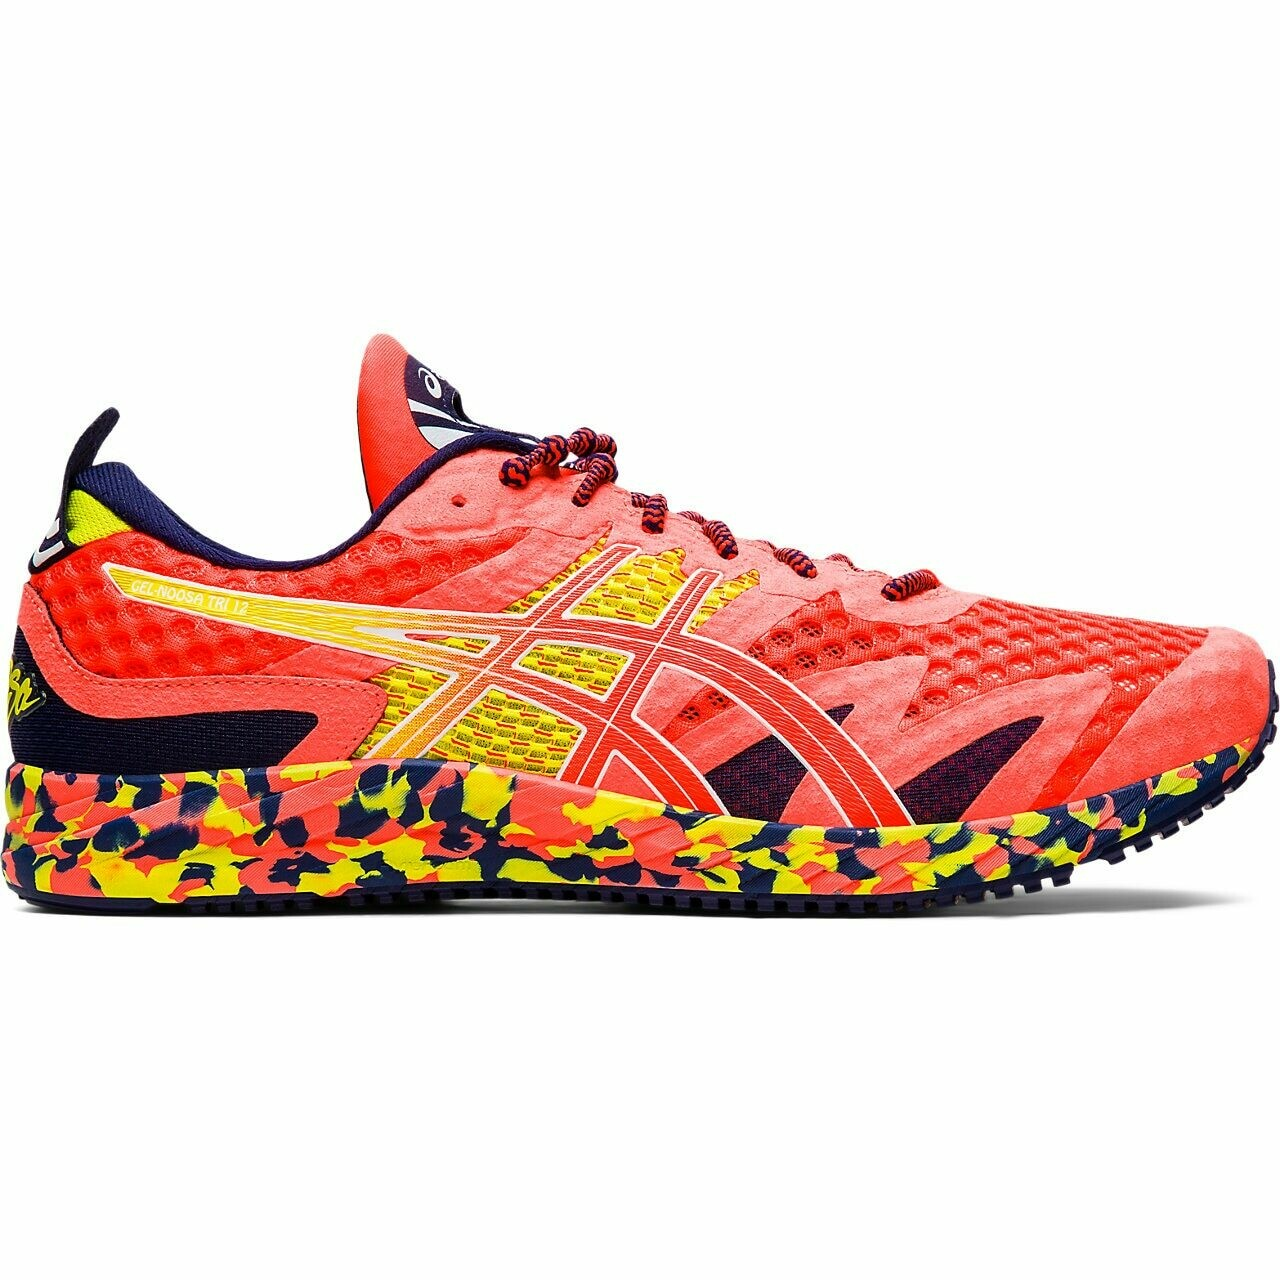 Asics Noosa 12 - Speed - Support